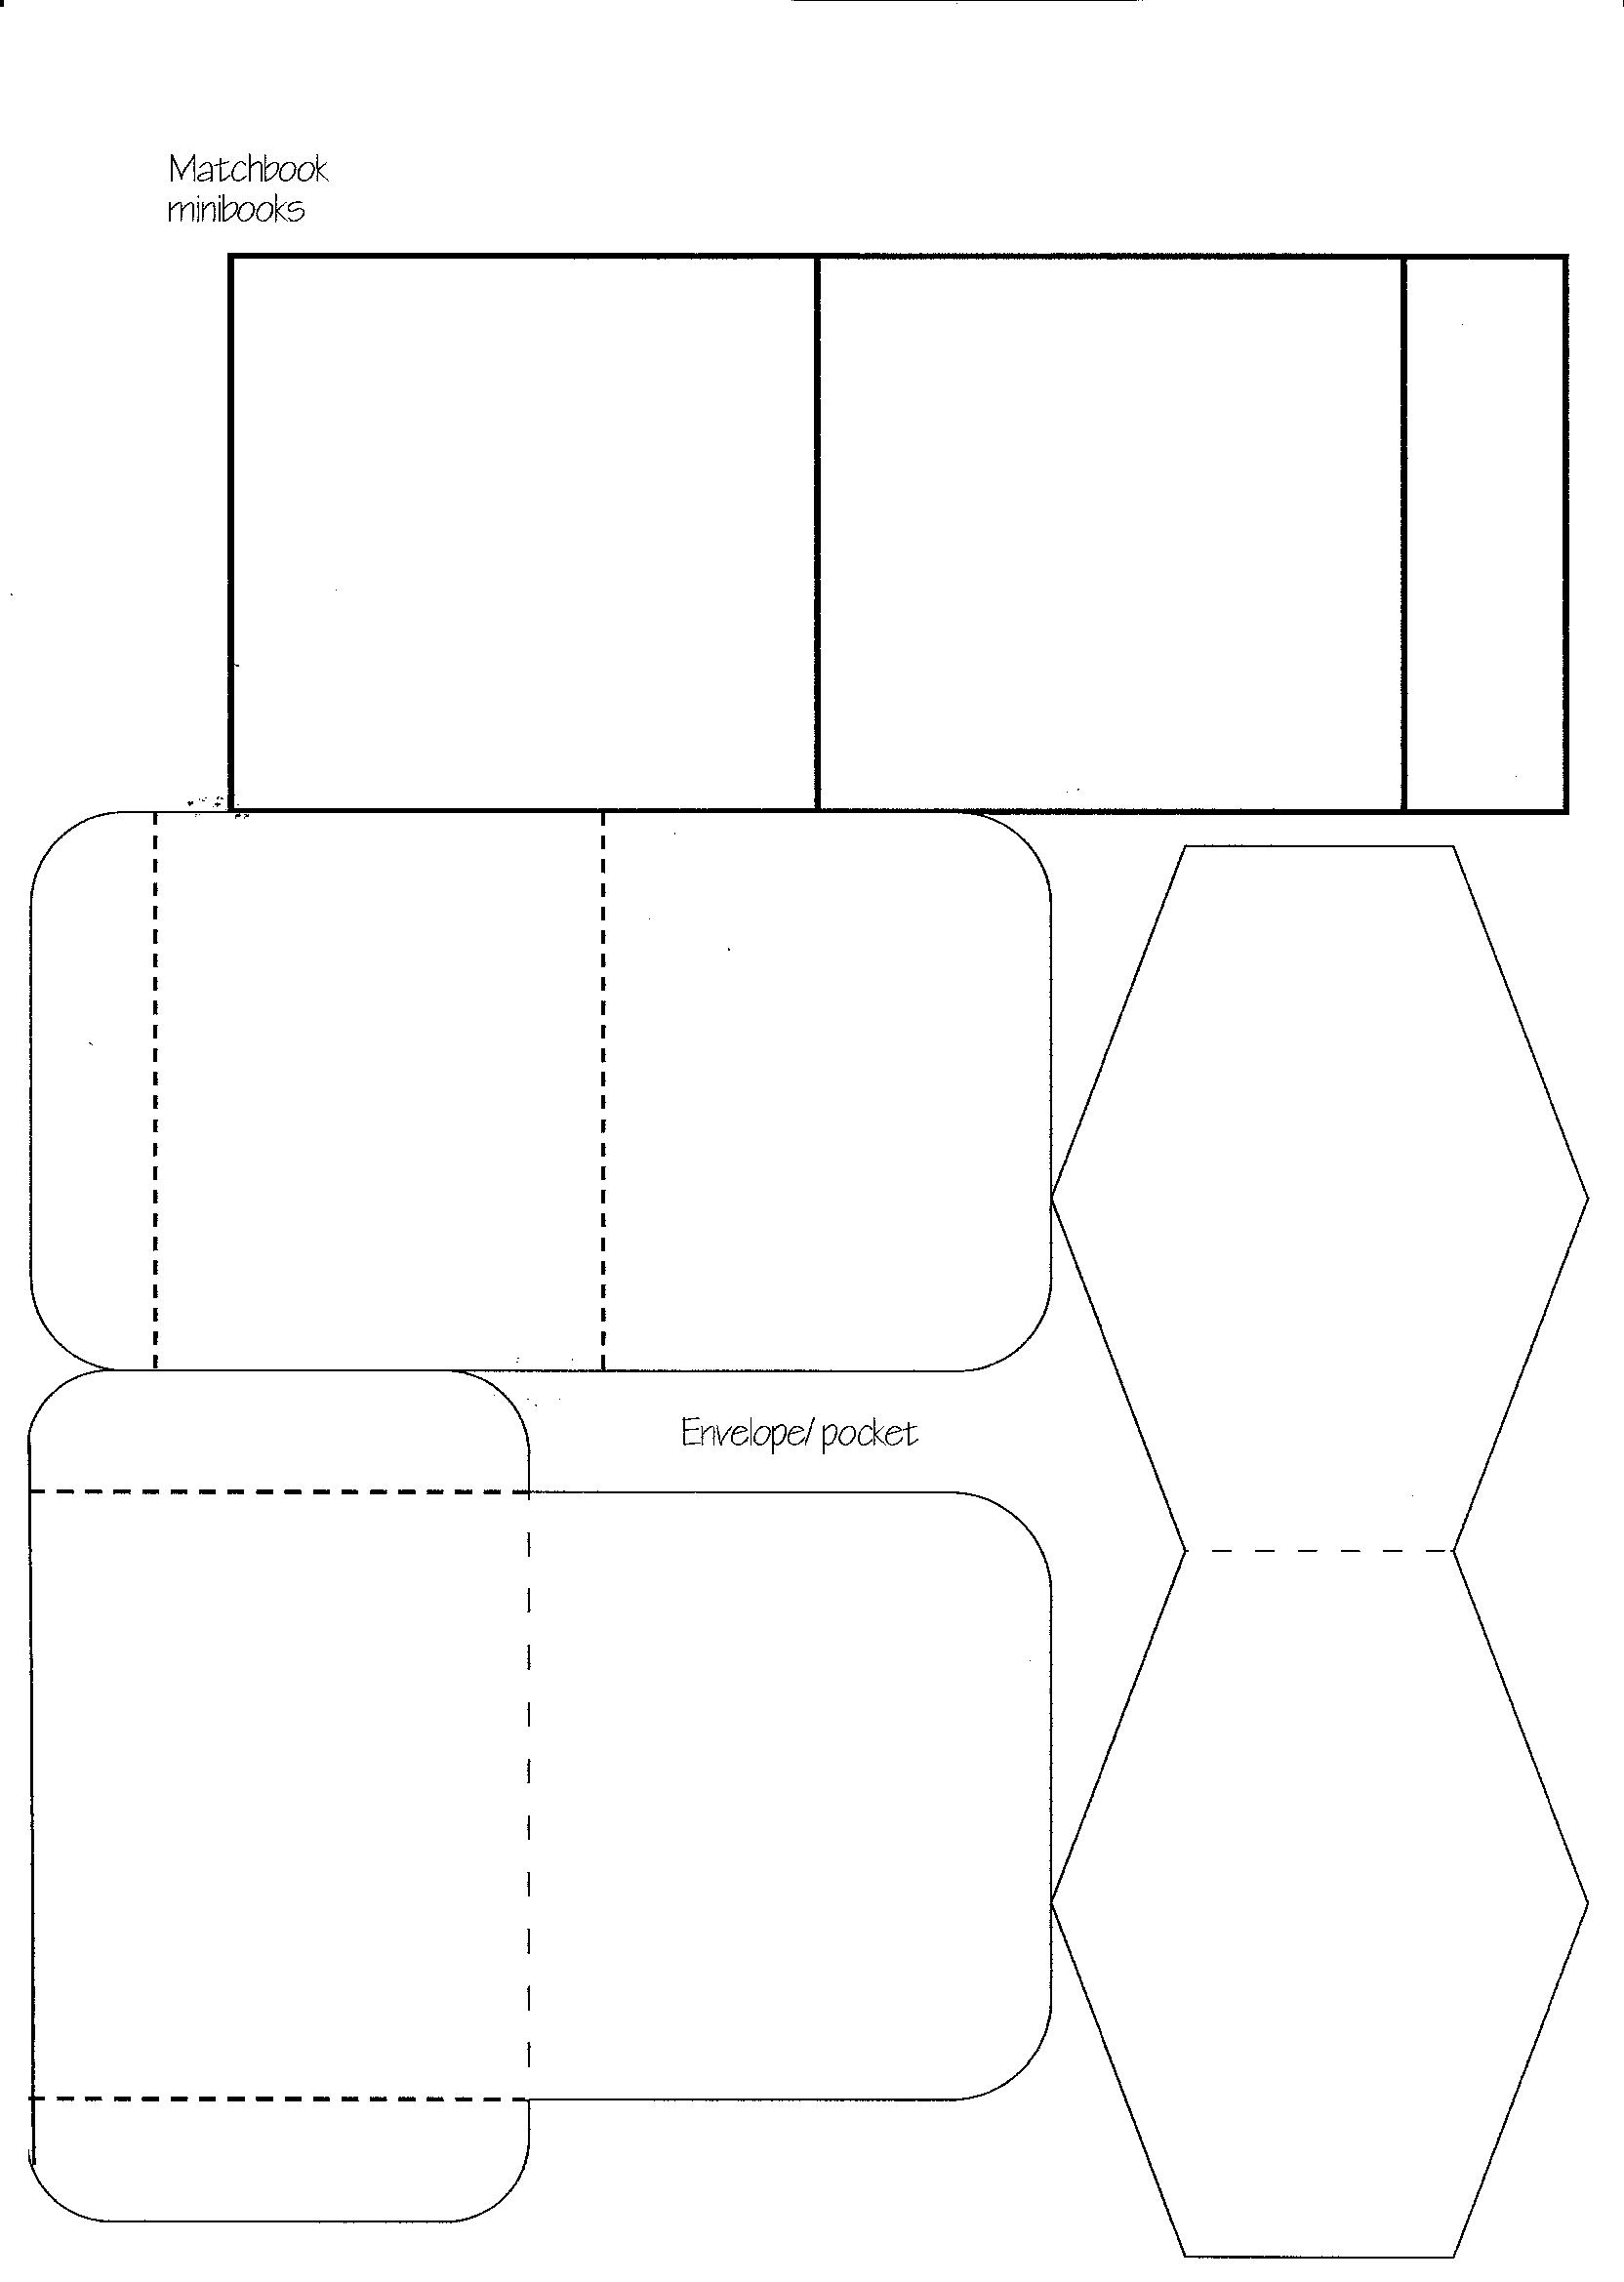 Minibook Master Template Download | Practical Pages